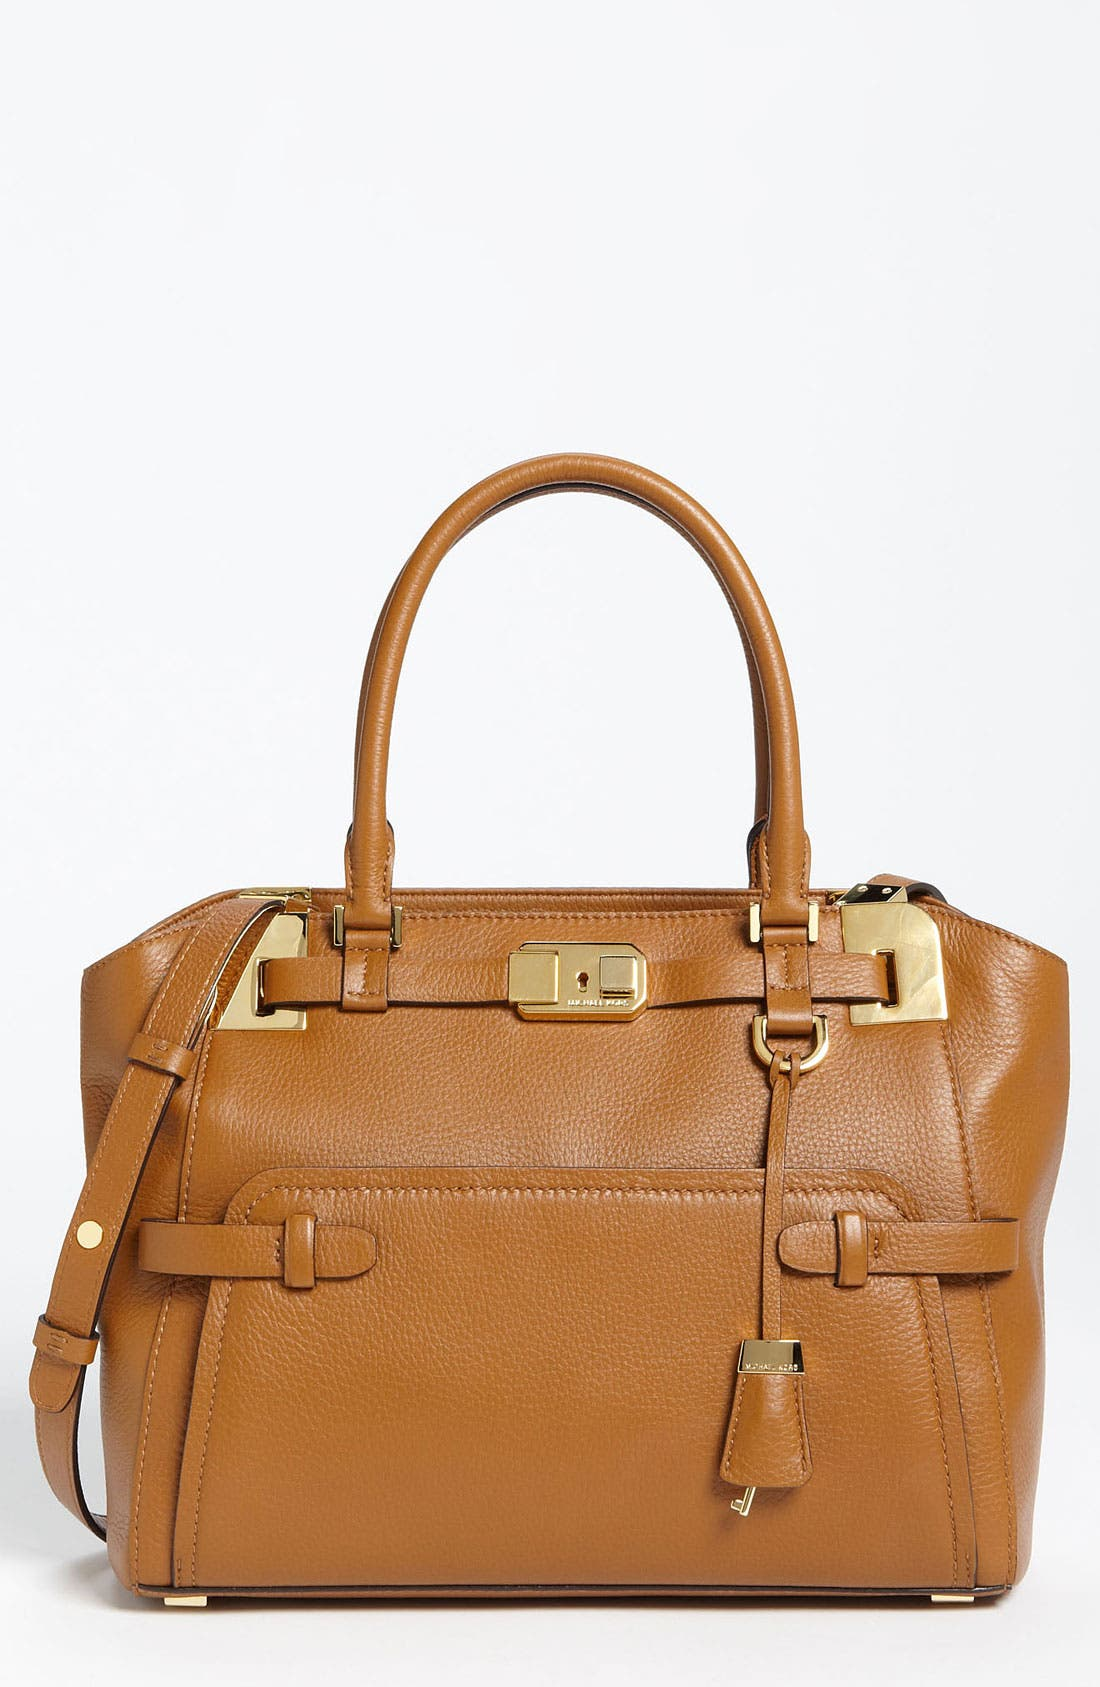 Main Image - Michael Kors 'Blake' Leather Satchel